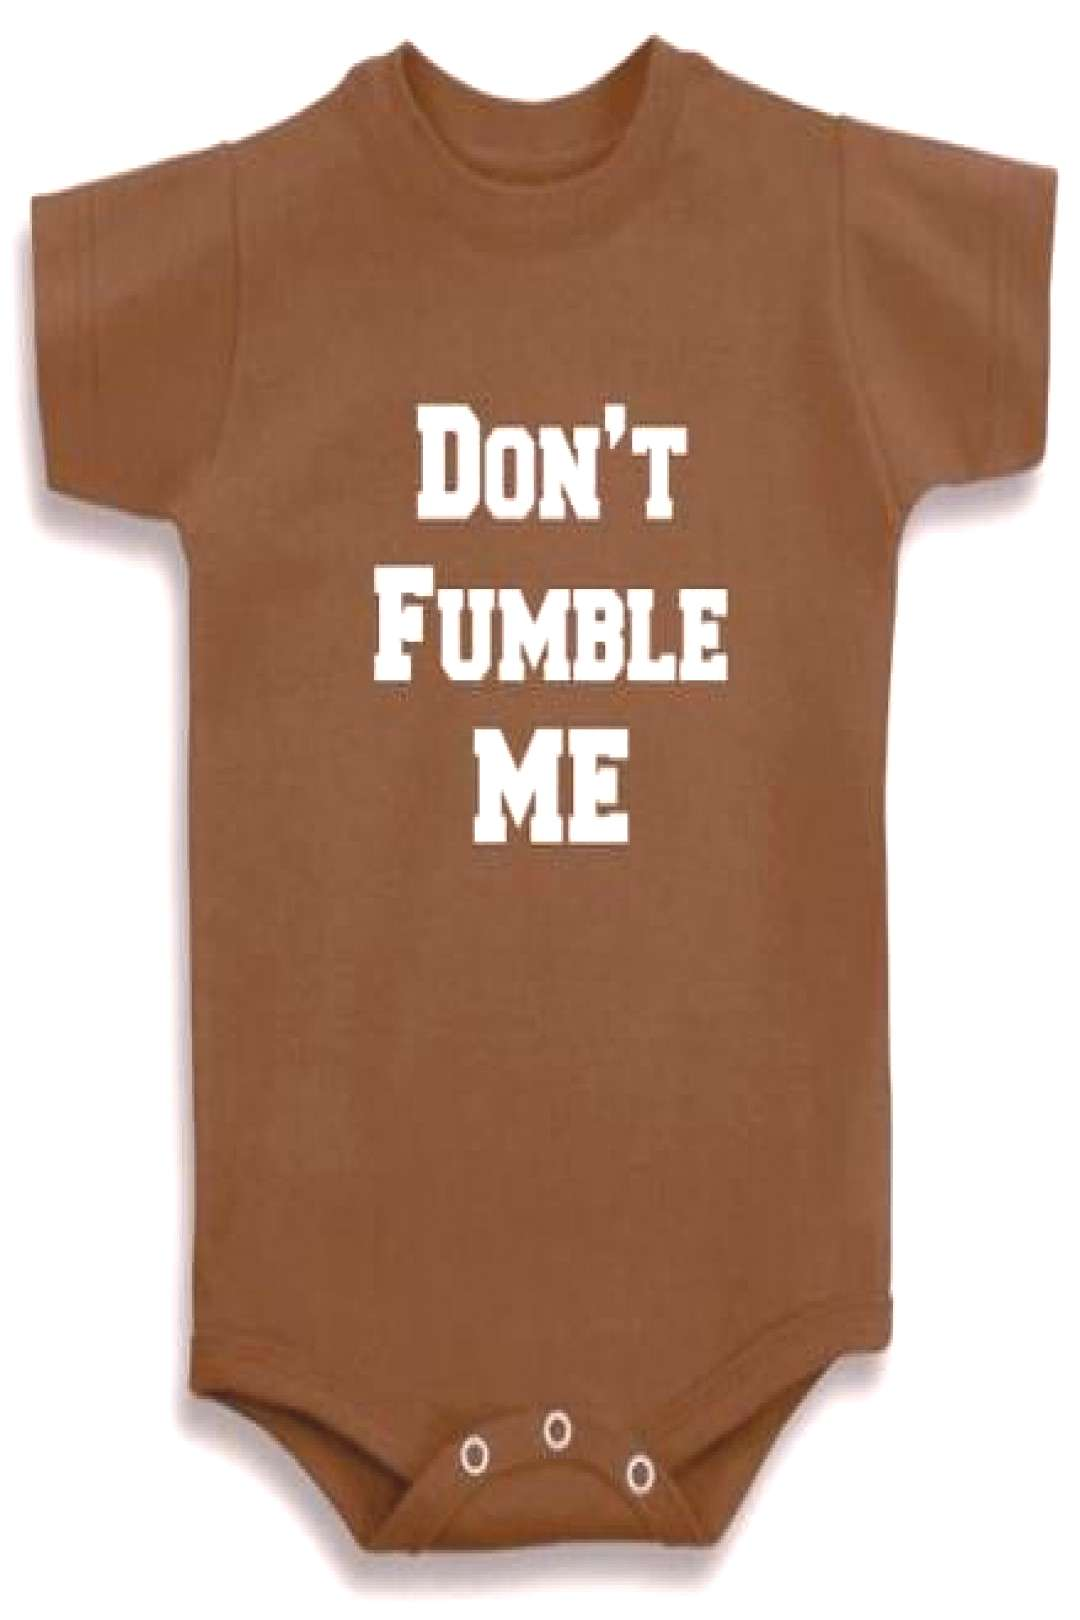 Funny Onesies For Boys Humor ` Funny Onesies For Boys funny onesies for boys humor * funny onesies